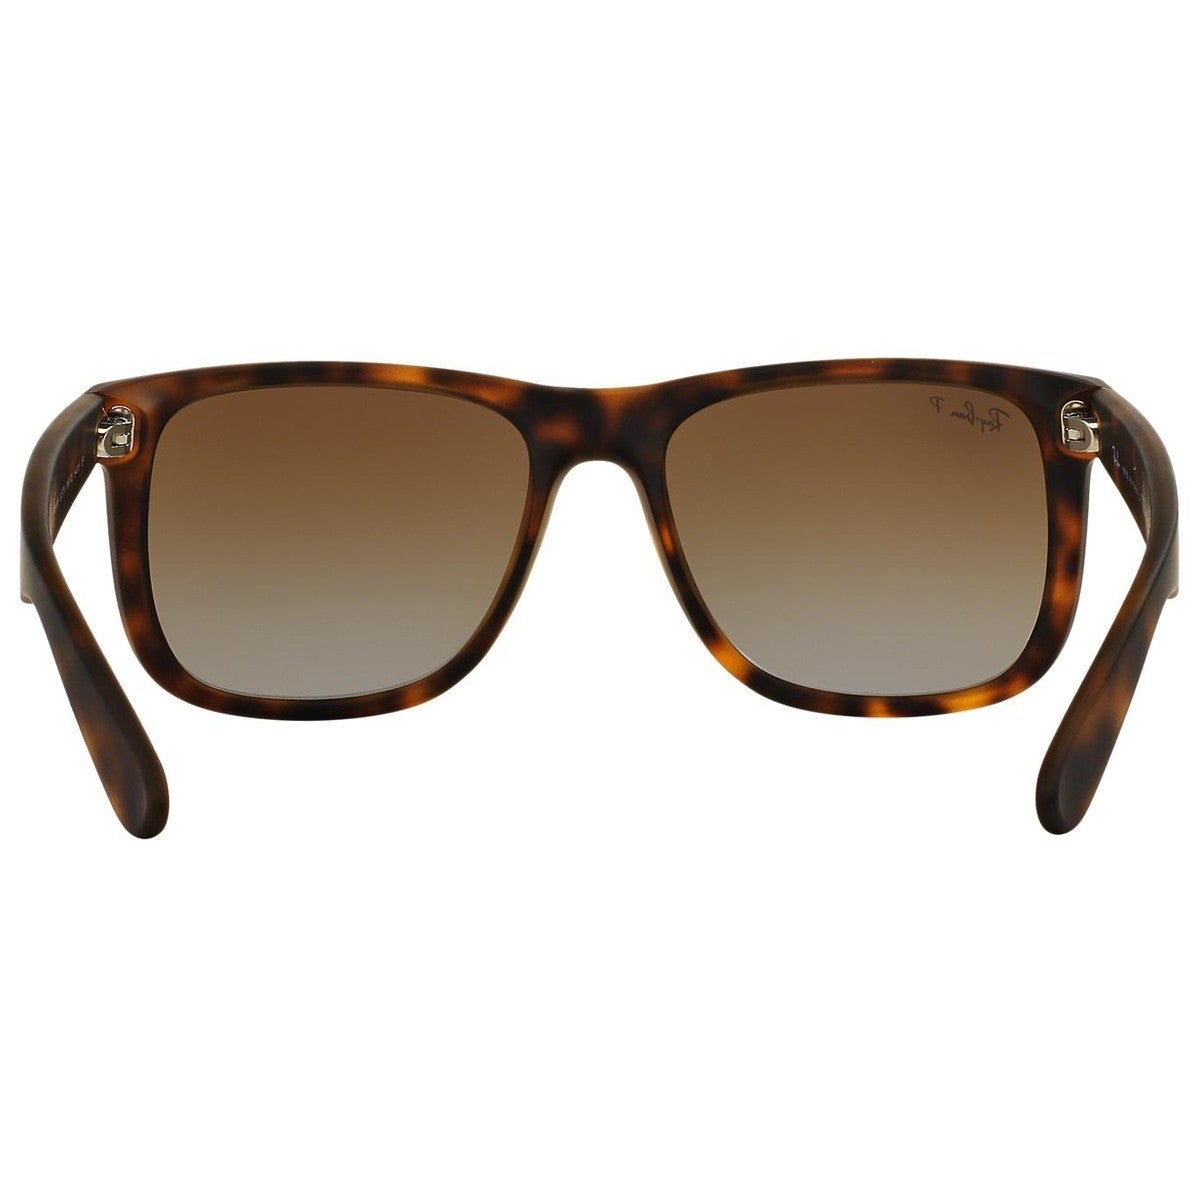 737e00a89d Shop Ray-Ban RB4165 865 T5 55 Justin Classic Tortoise Frame Polarized Brown  Gradient 55mm Lens Sunglasses - Free Shipping Today - Overstock - 11883920